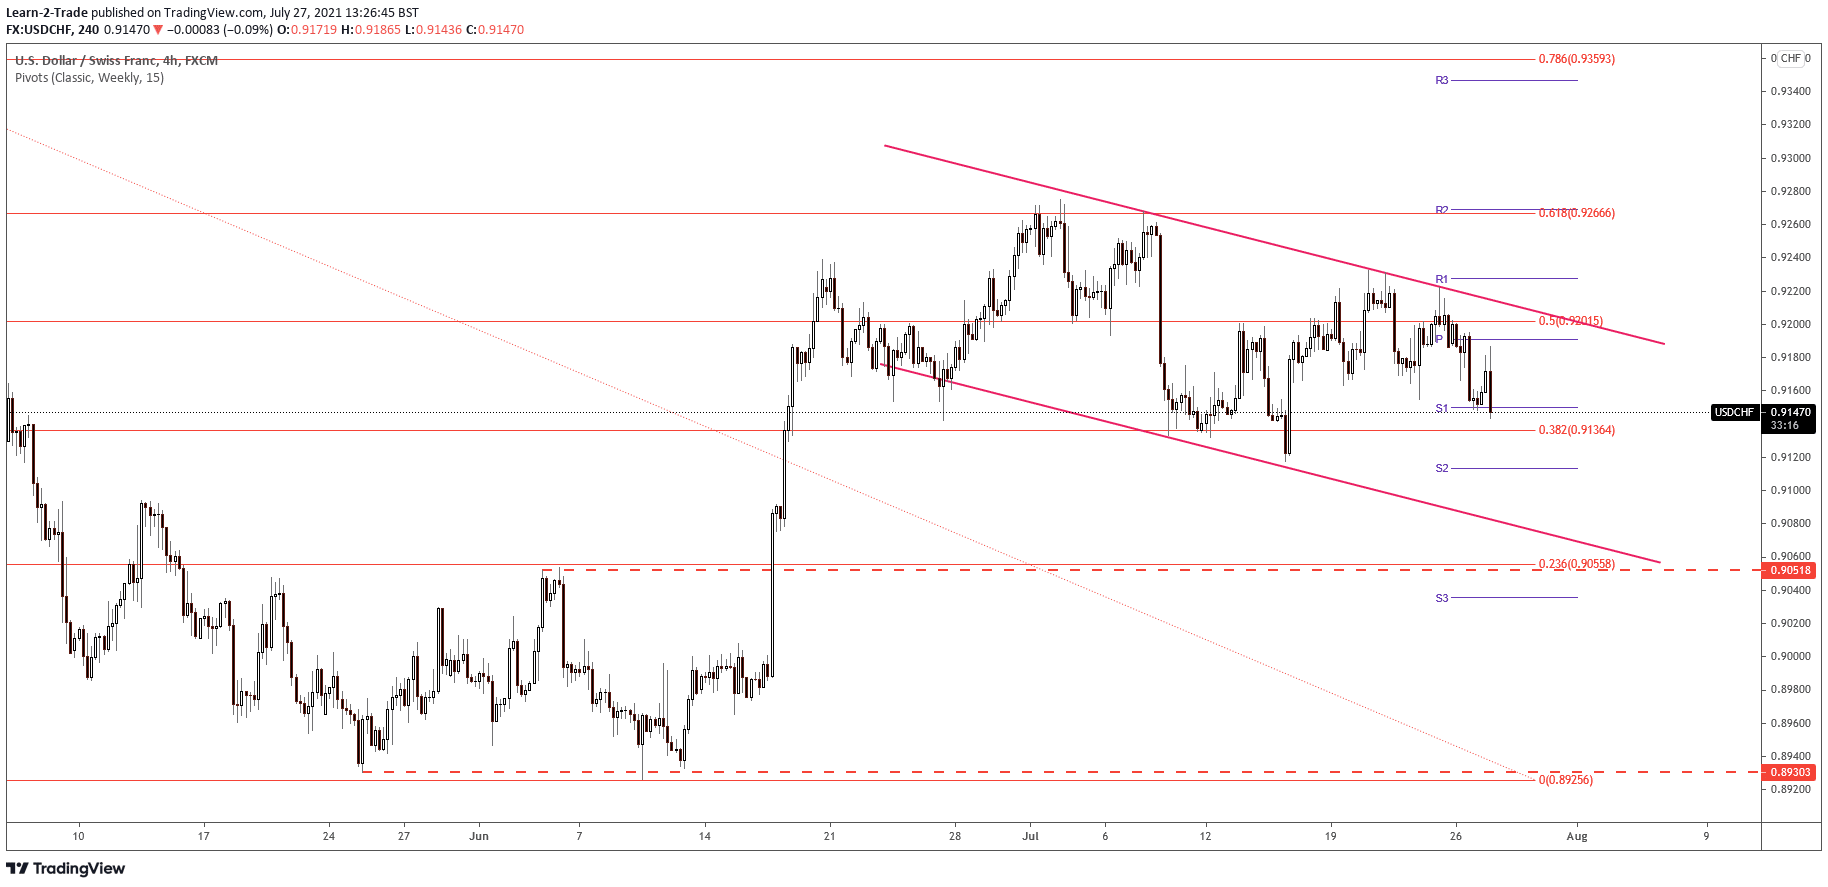 USD/CHF price on 4-hour chart